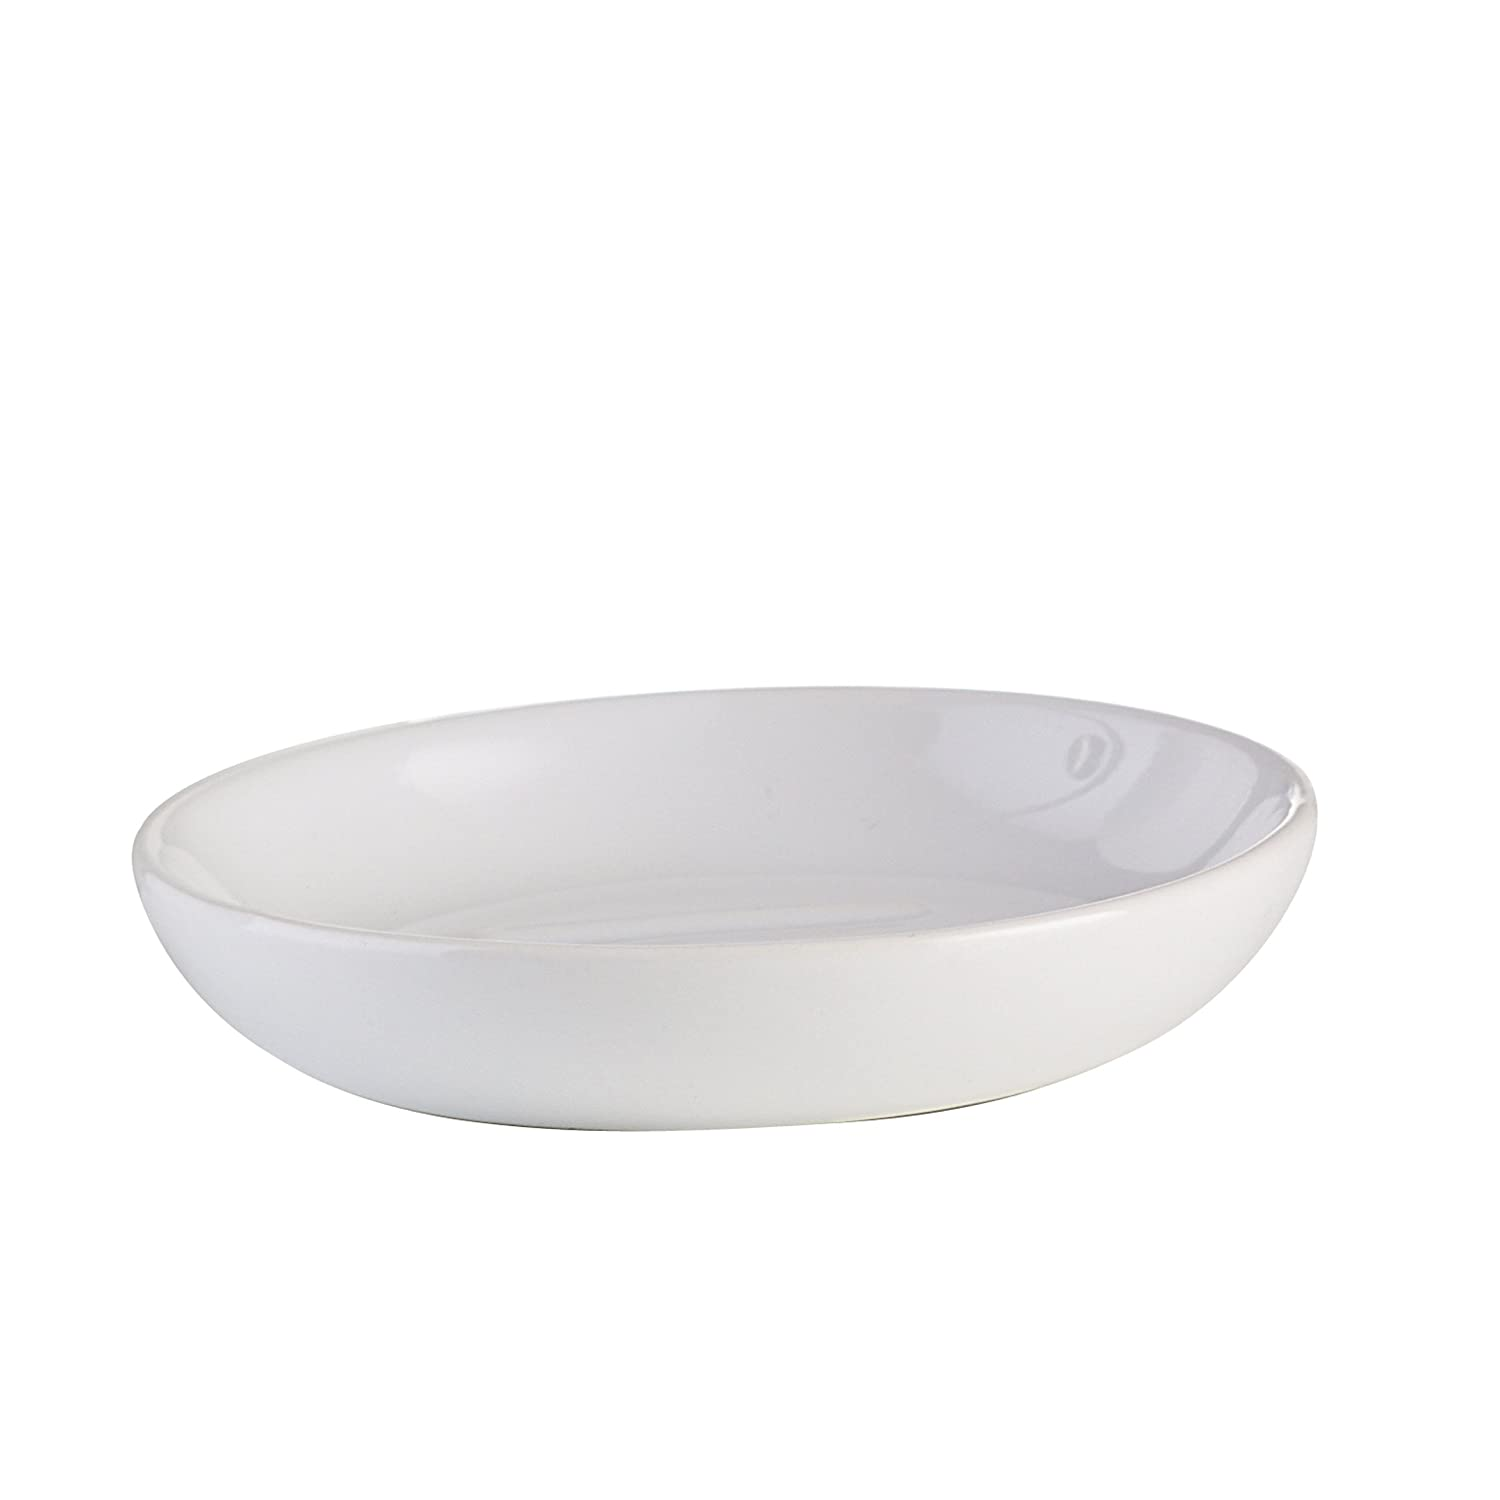 Axentia Soap Dish, Decorative Ceramic Bathroom Round Soap Dish/Soap Holder without Wall Mounted, Bathroom Accessories, approx. 10.5x 10.5x 2cm White 282411